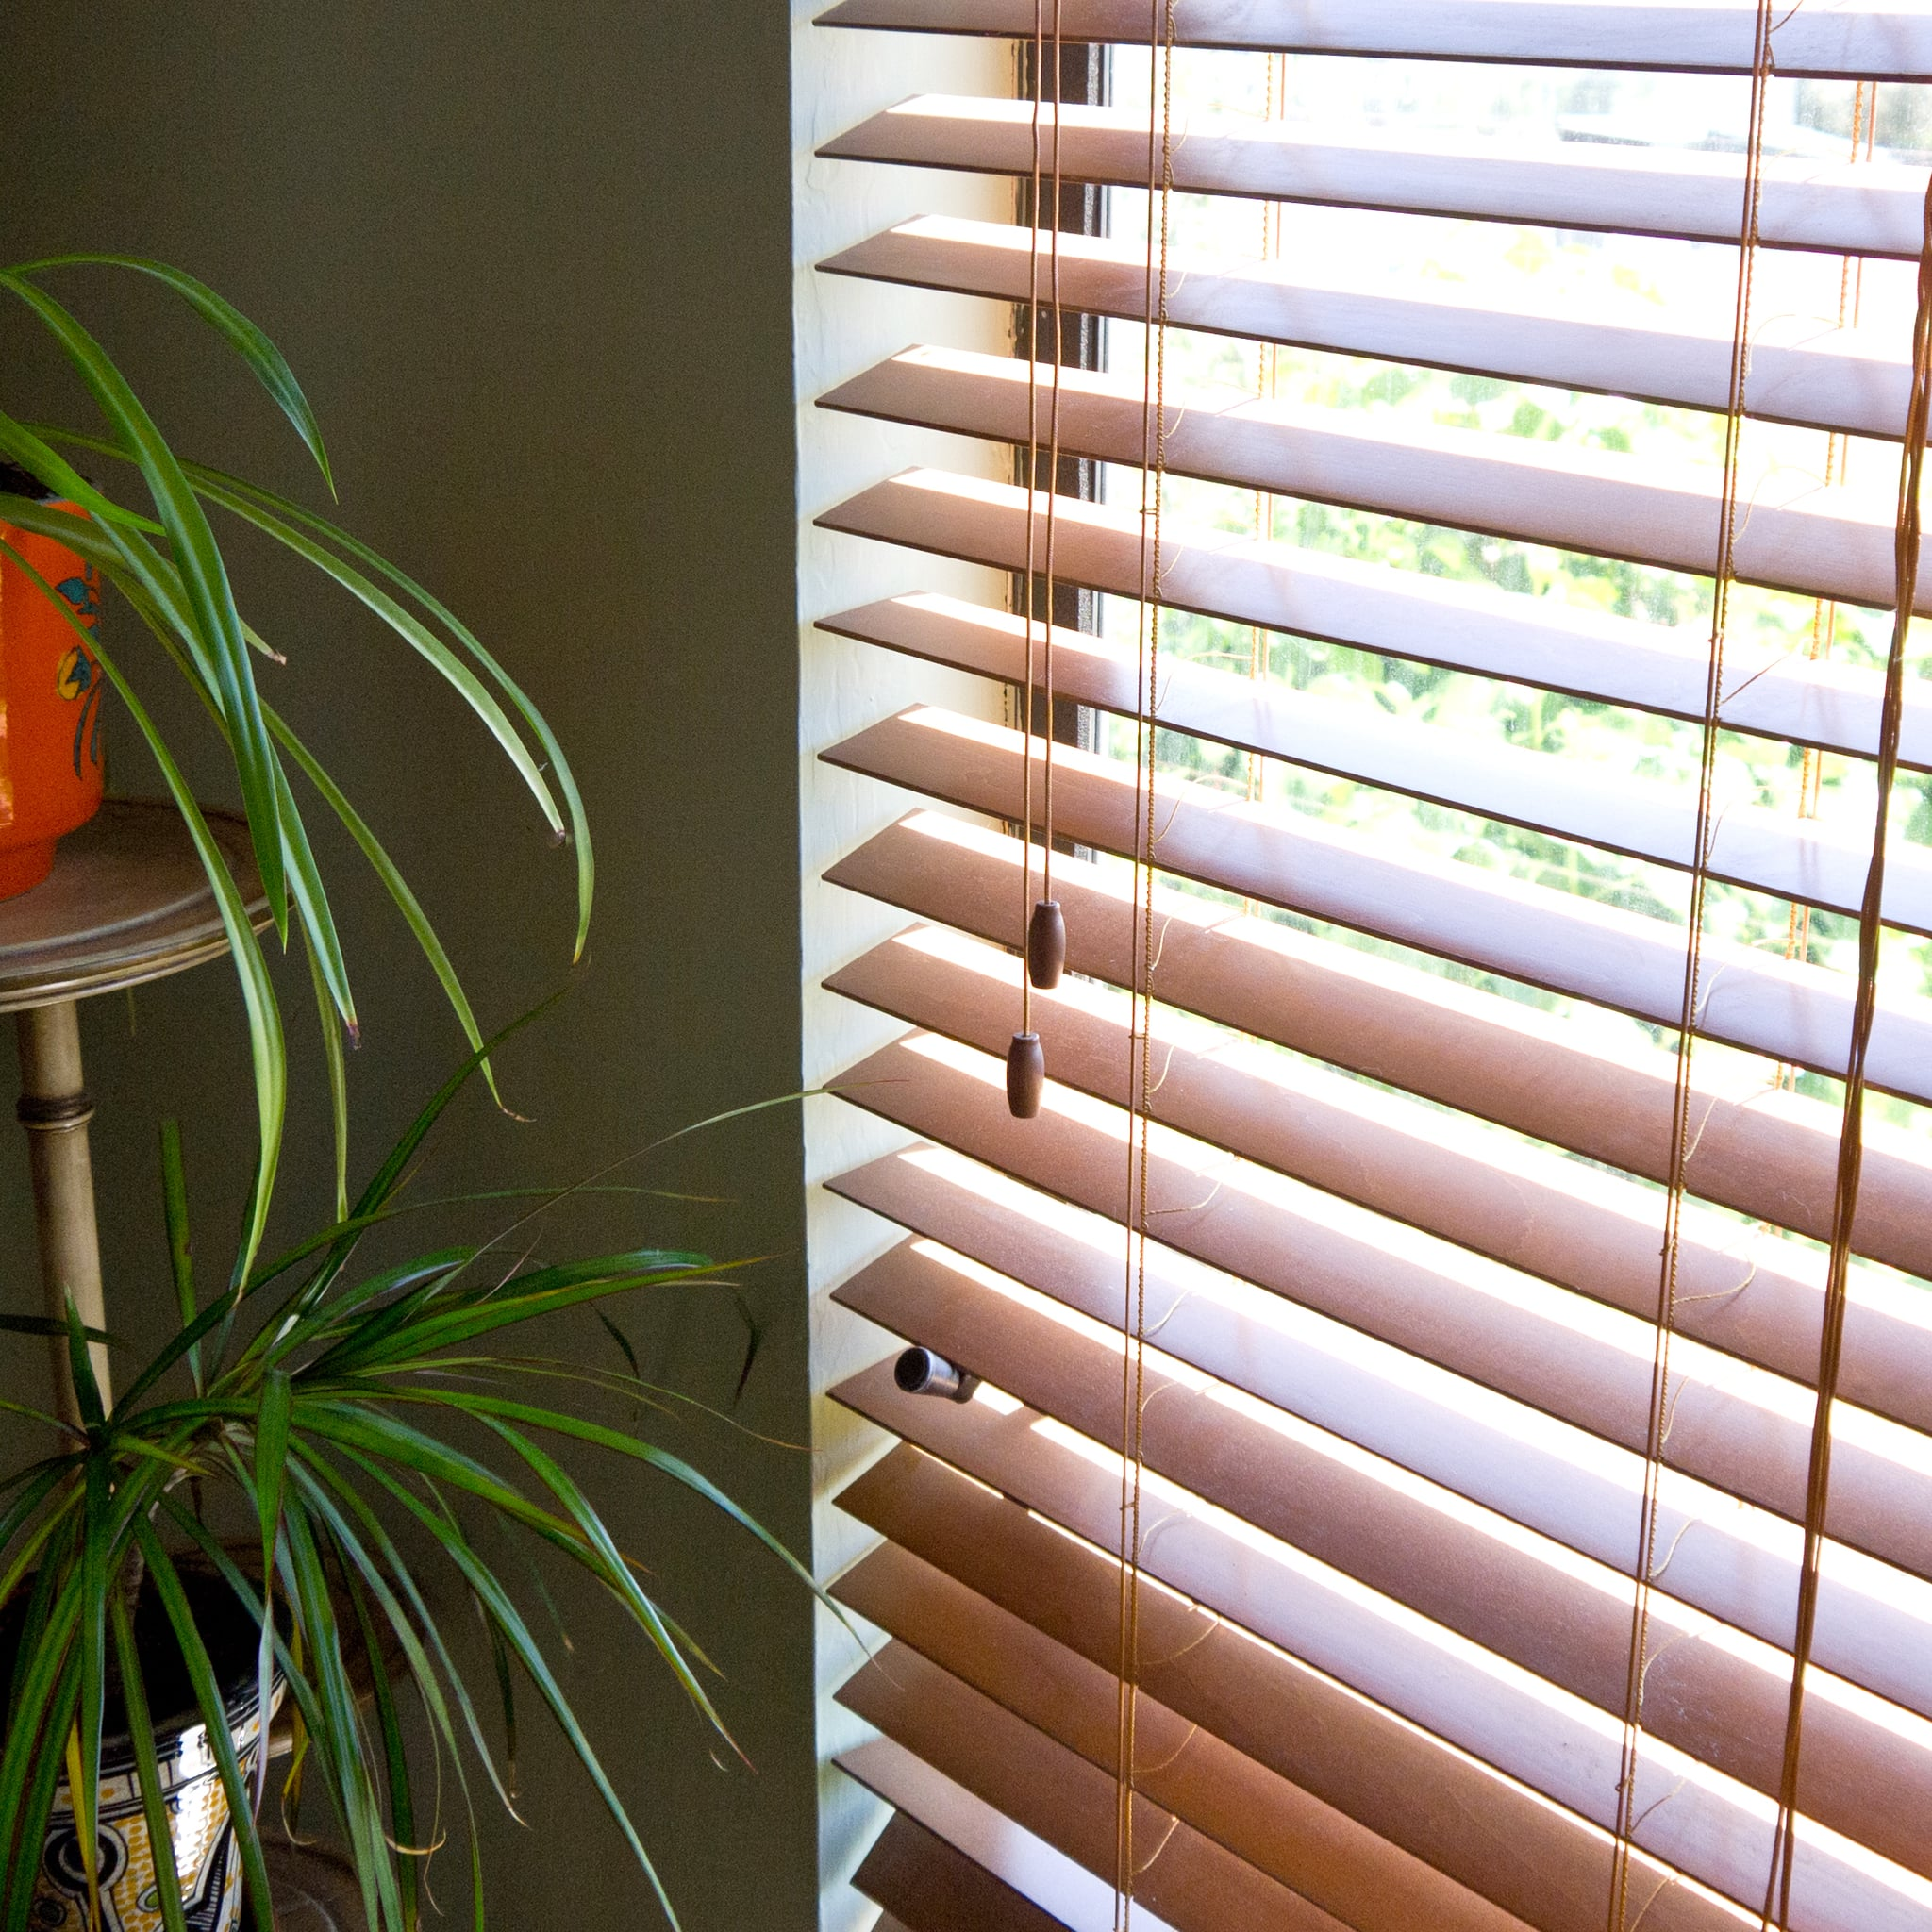 haven full natural yet storage the blinds blog heard view infographic hacks you cleaning t cleaner of